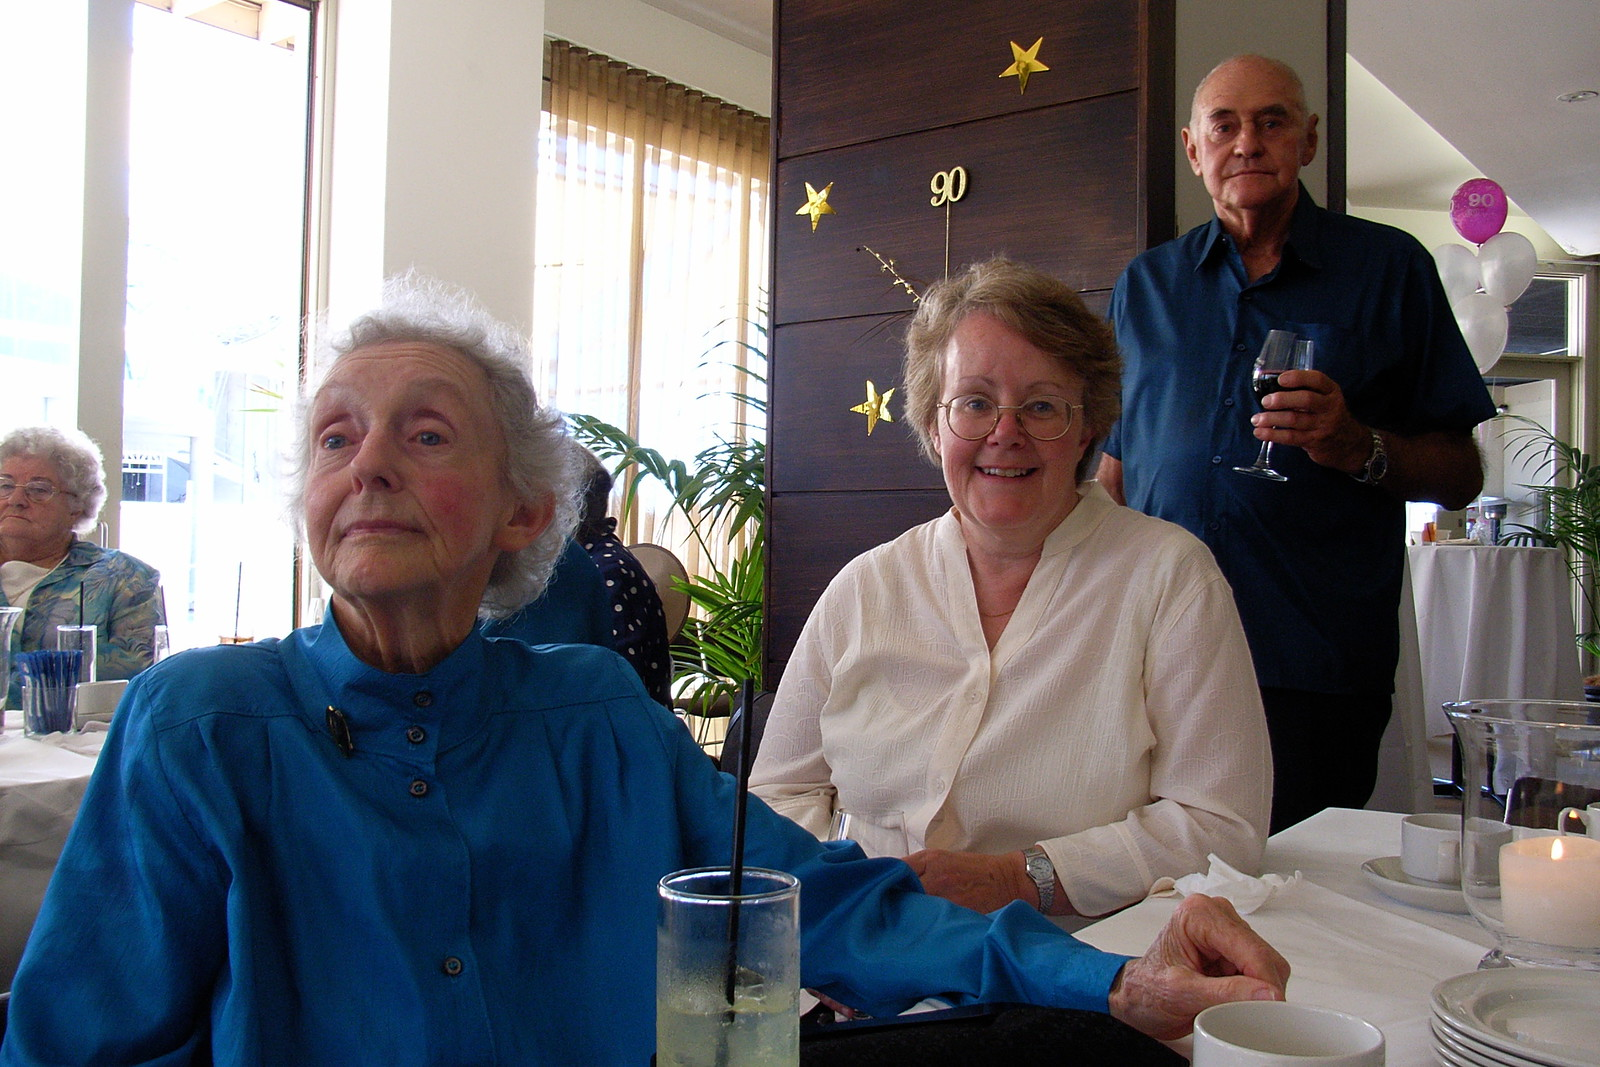 Pam, Debbie and Harvey, Syb's 90th Birthday Party, Melbourne, 2009